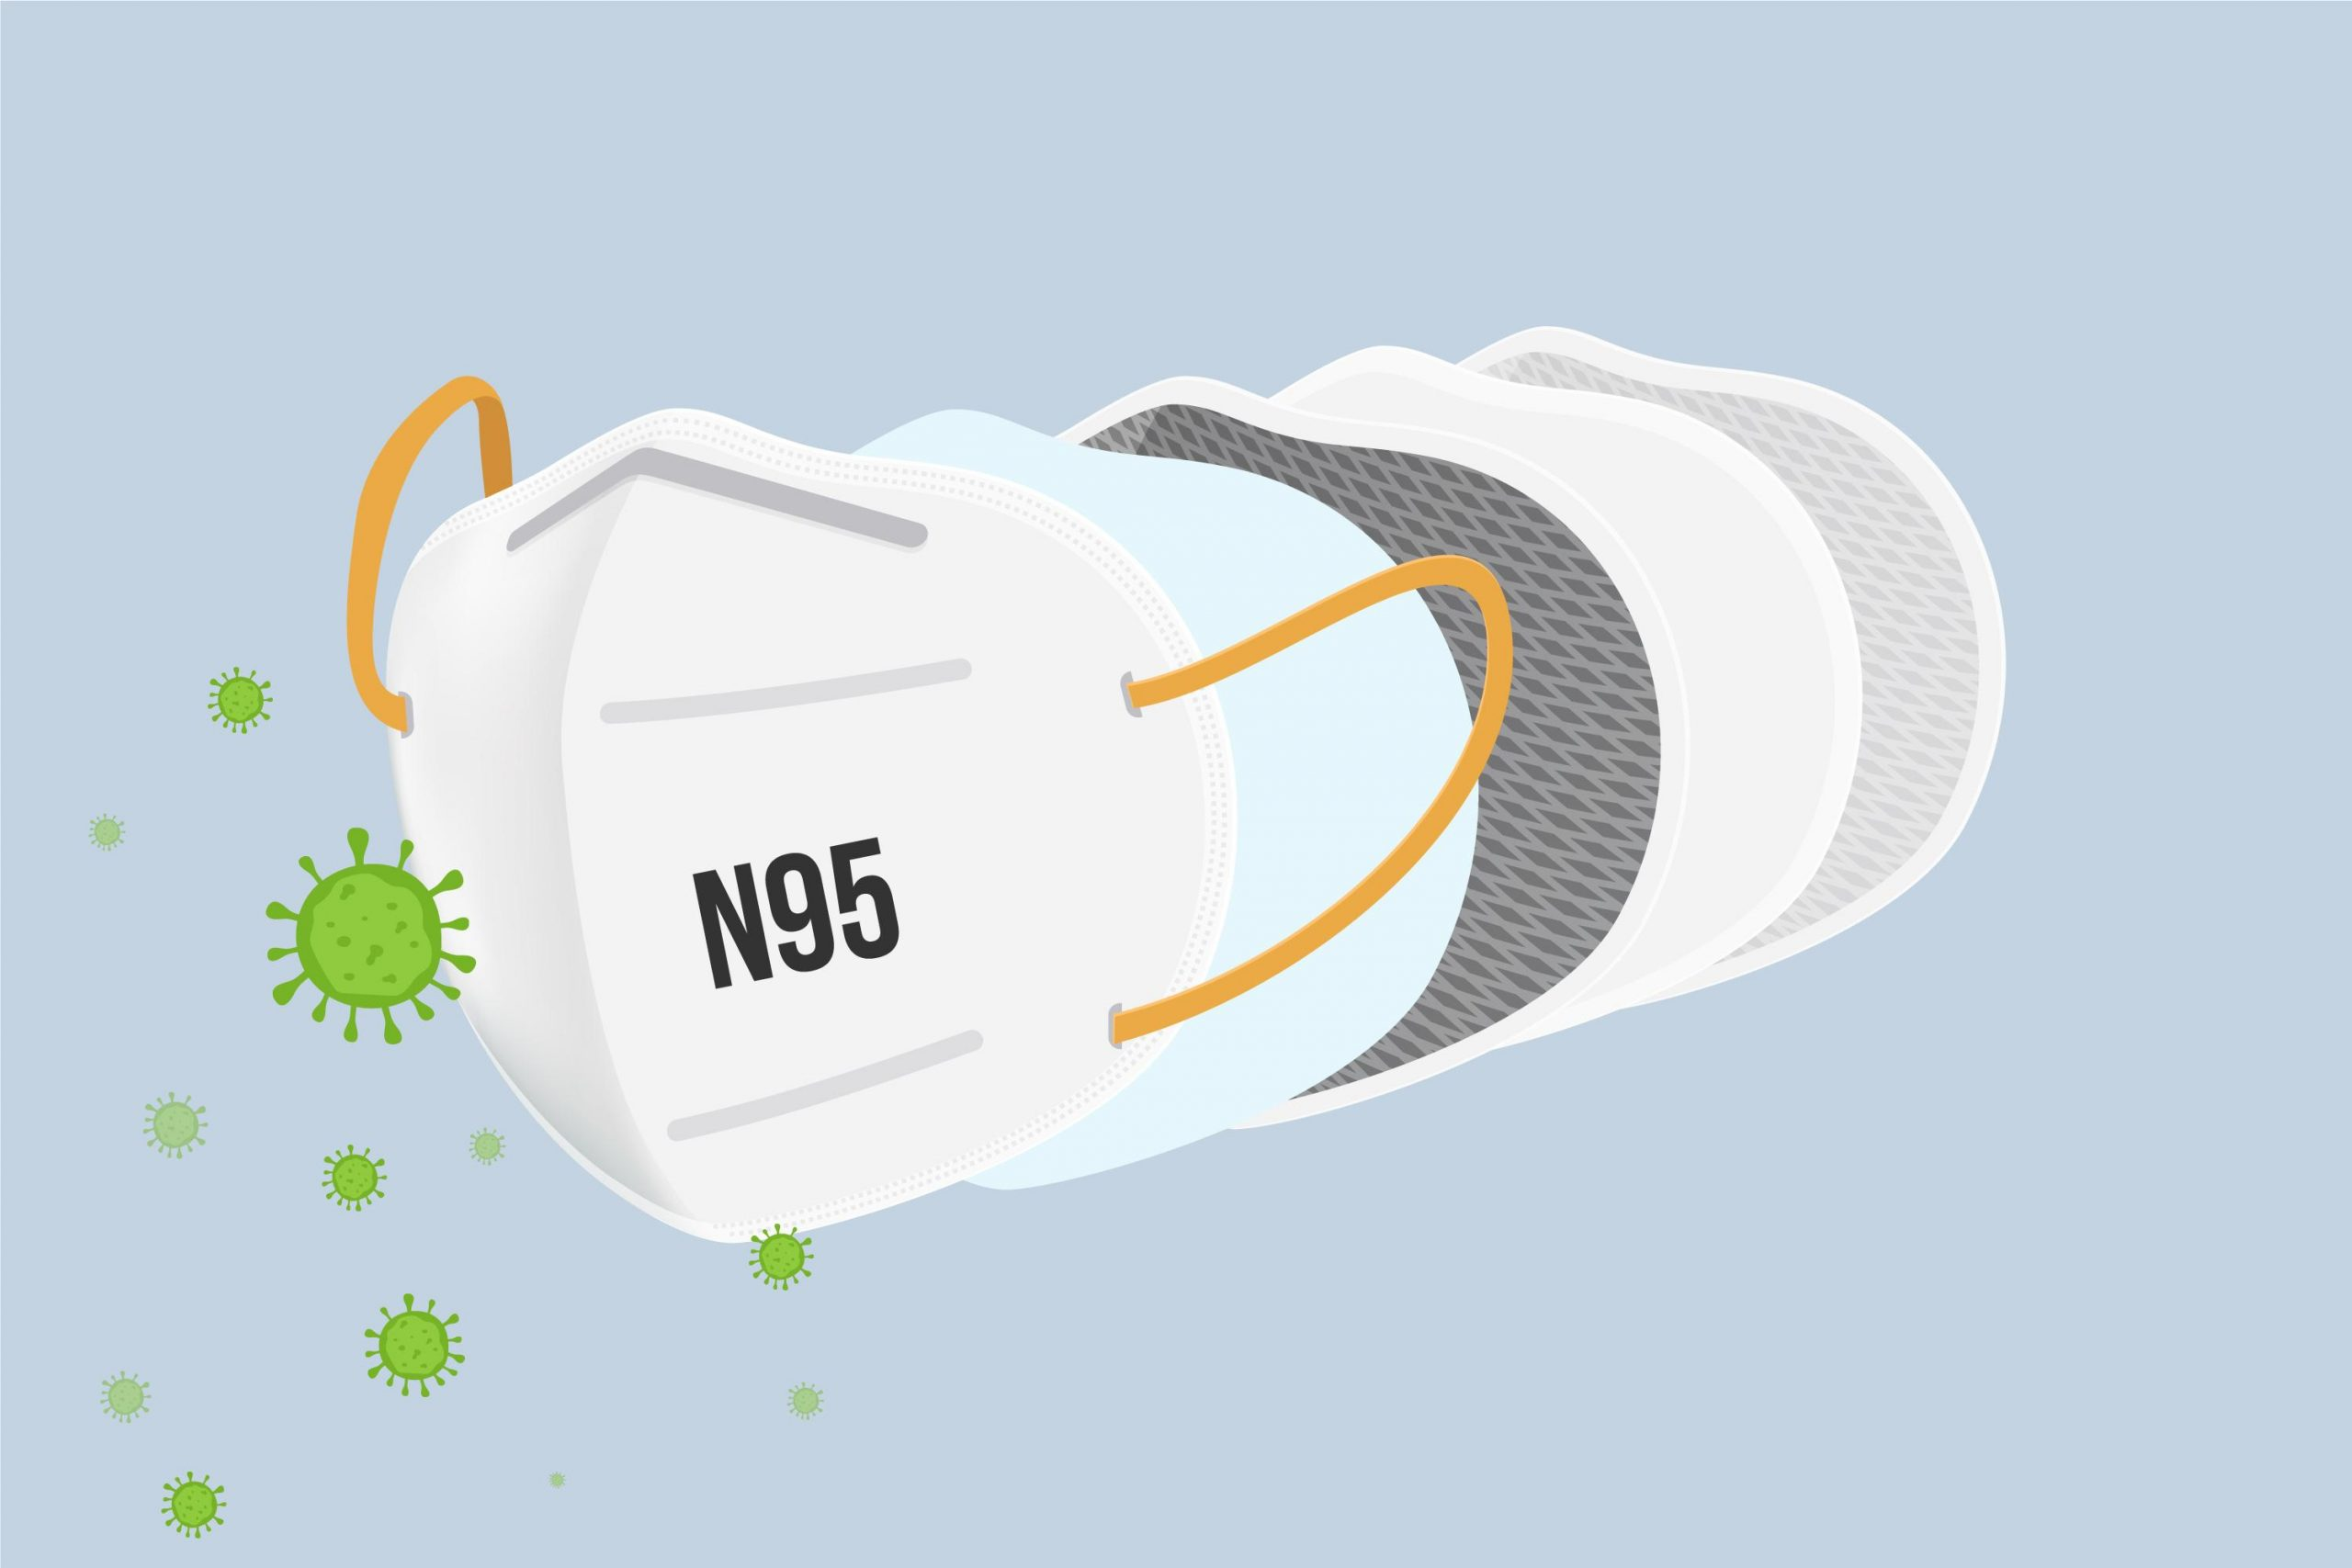 n95 pollution mask for covid19